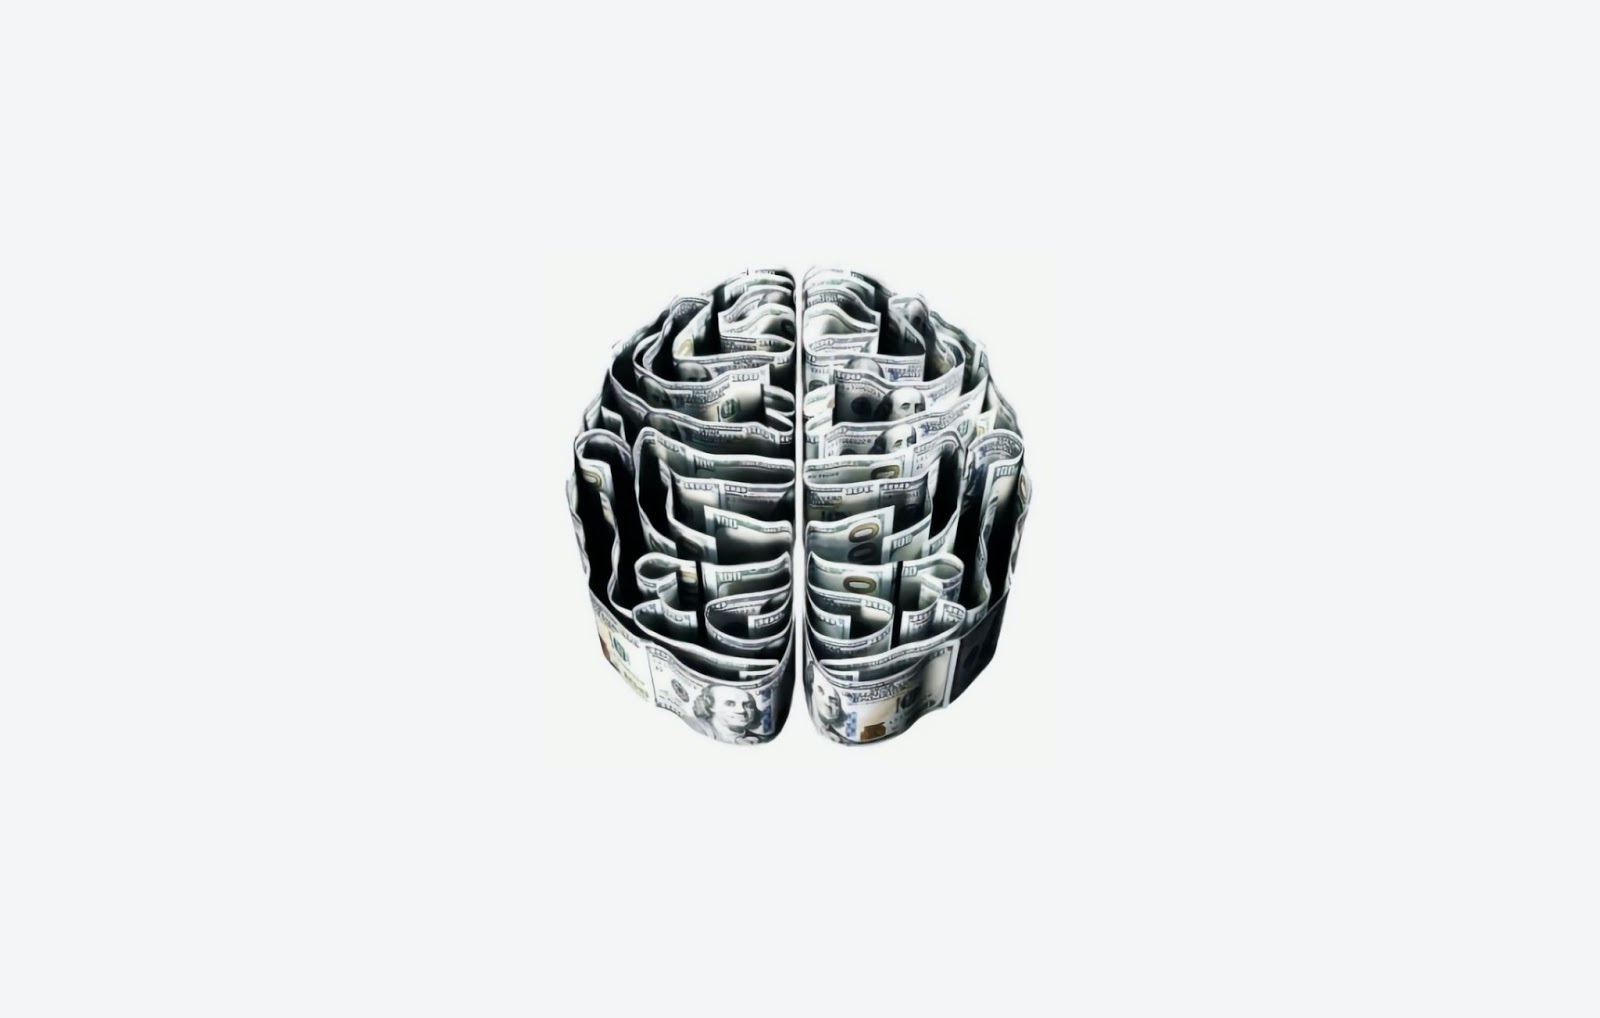 How to care for your brain health